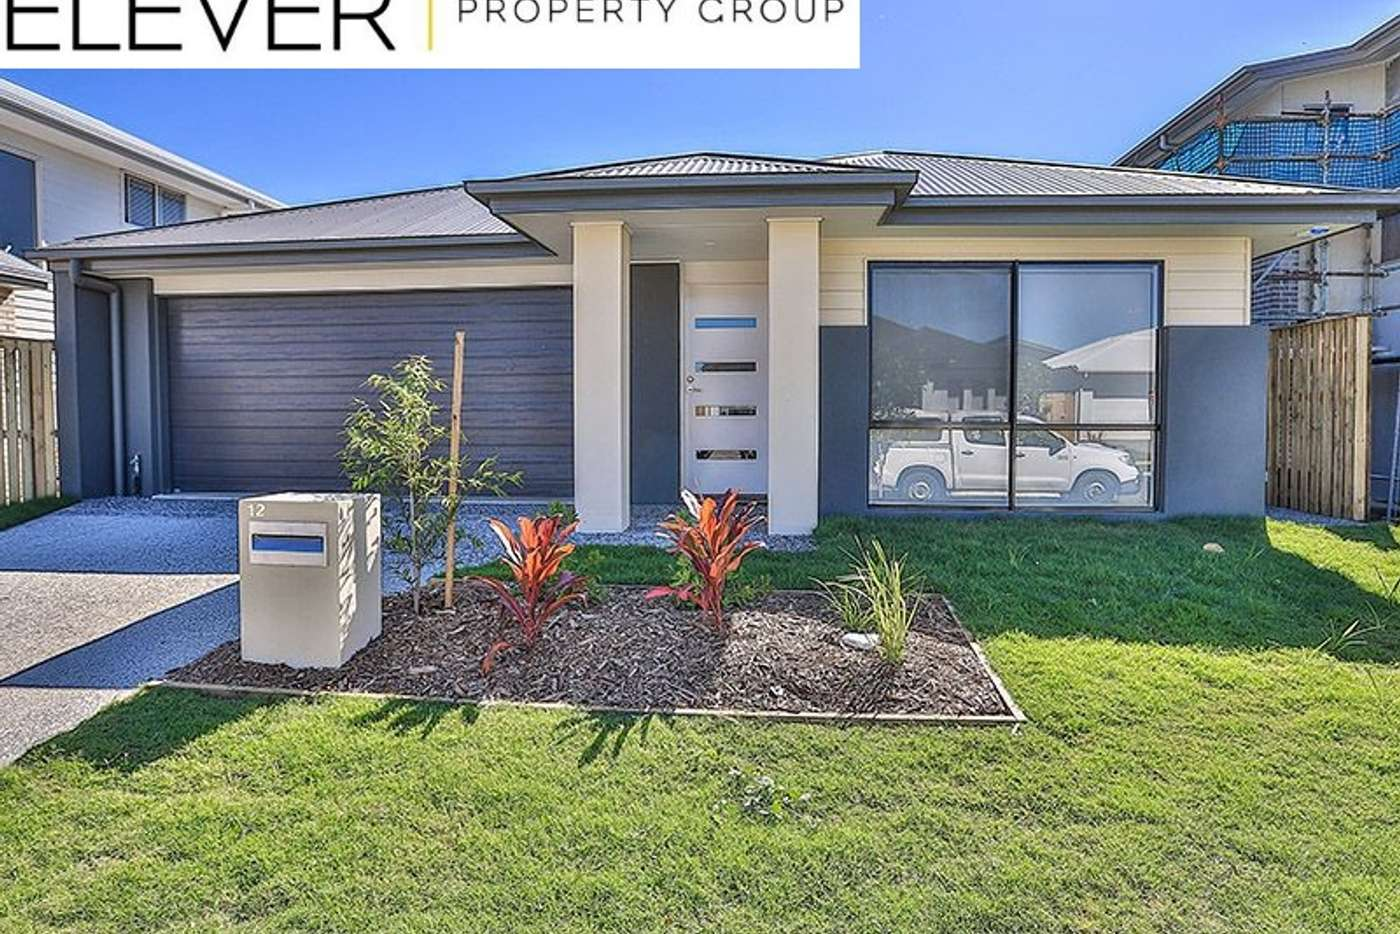 Main view of Homely house listing, 12 Buccaneer Street, Newport QLD 4020